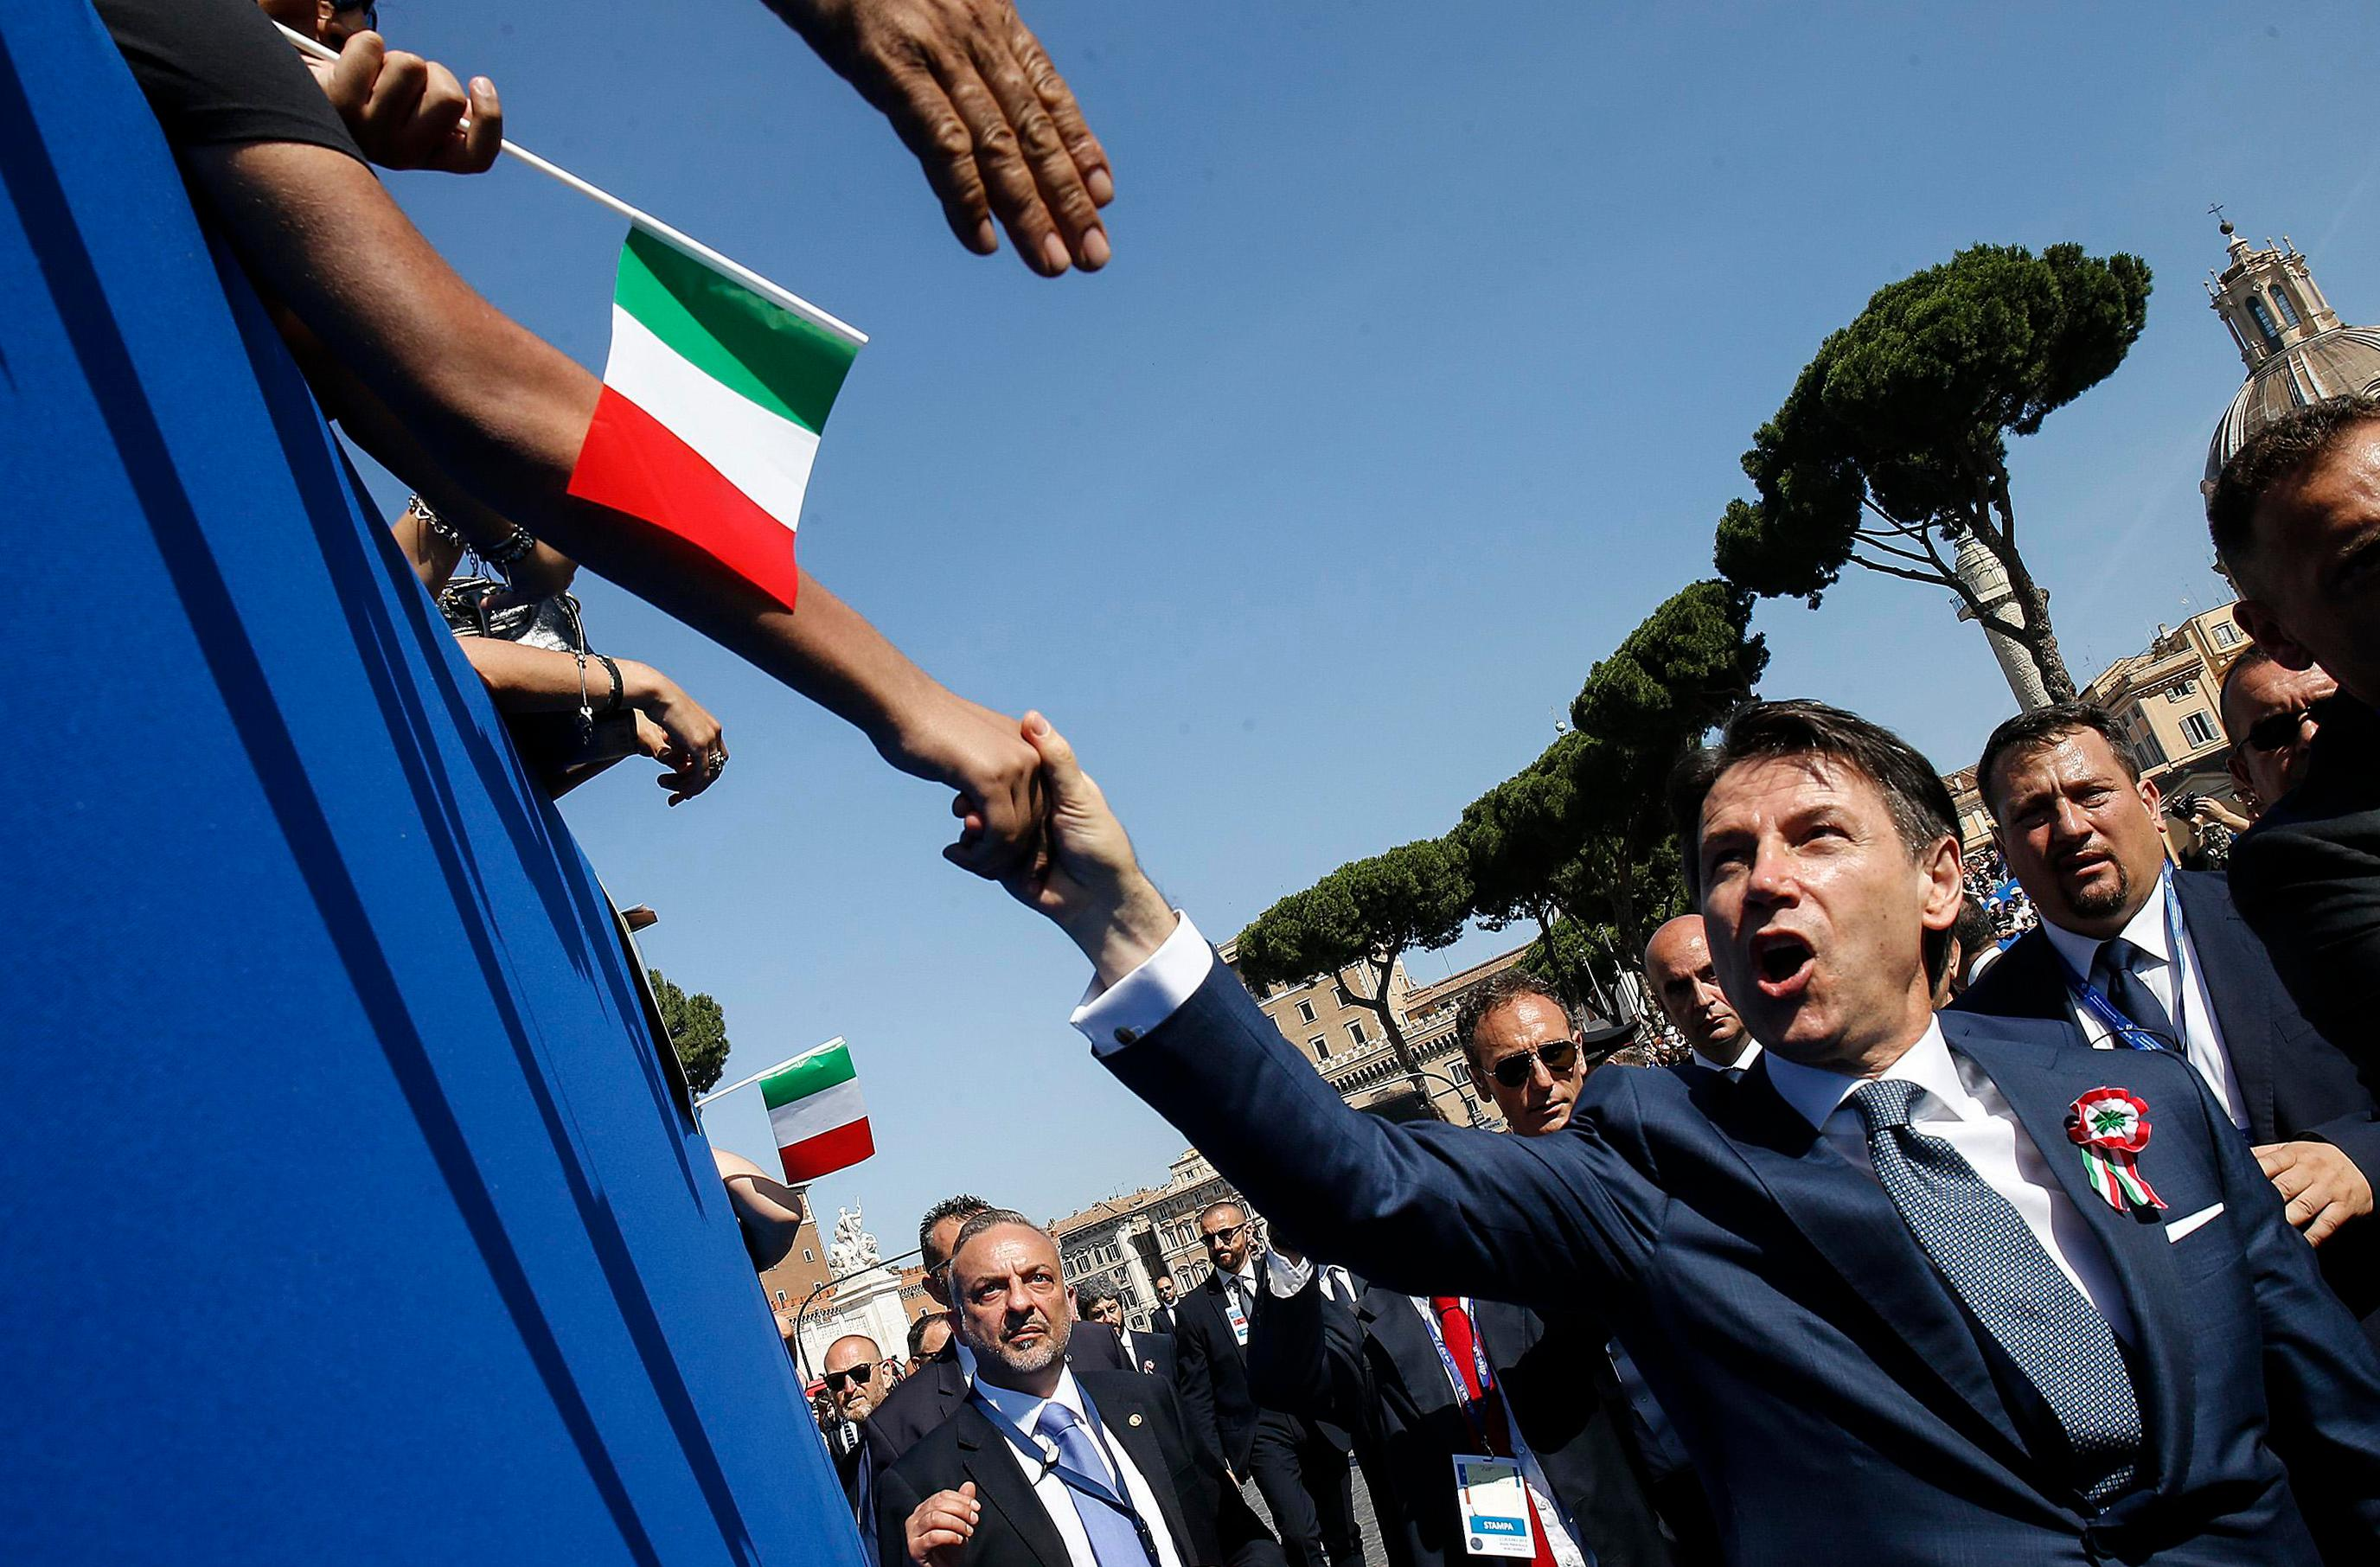 Italian Premier Giuseppe Conte is greeted by citizens on the occasion of the celebrations for Italy's Republic Day, in Rome Saturday, June 2, 2018. (Fabio Frustaci/ANSA via AP)